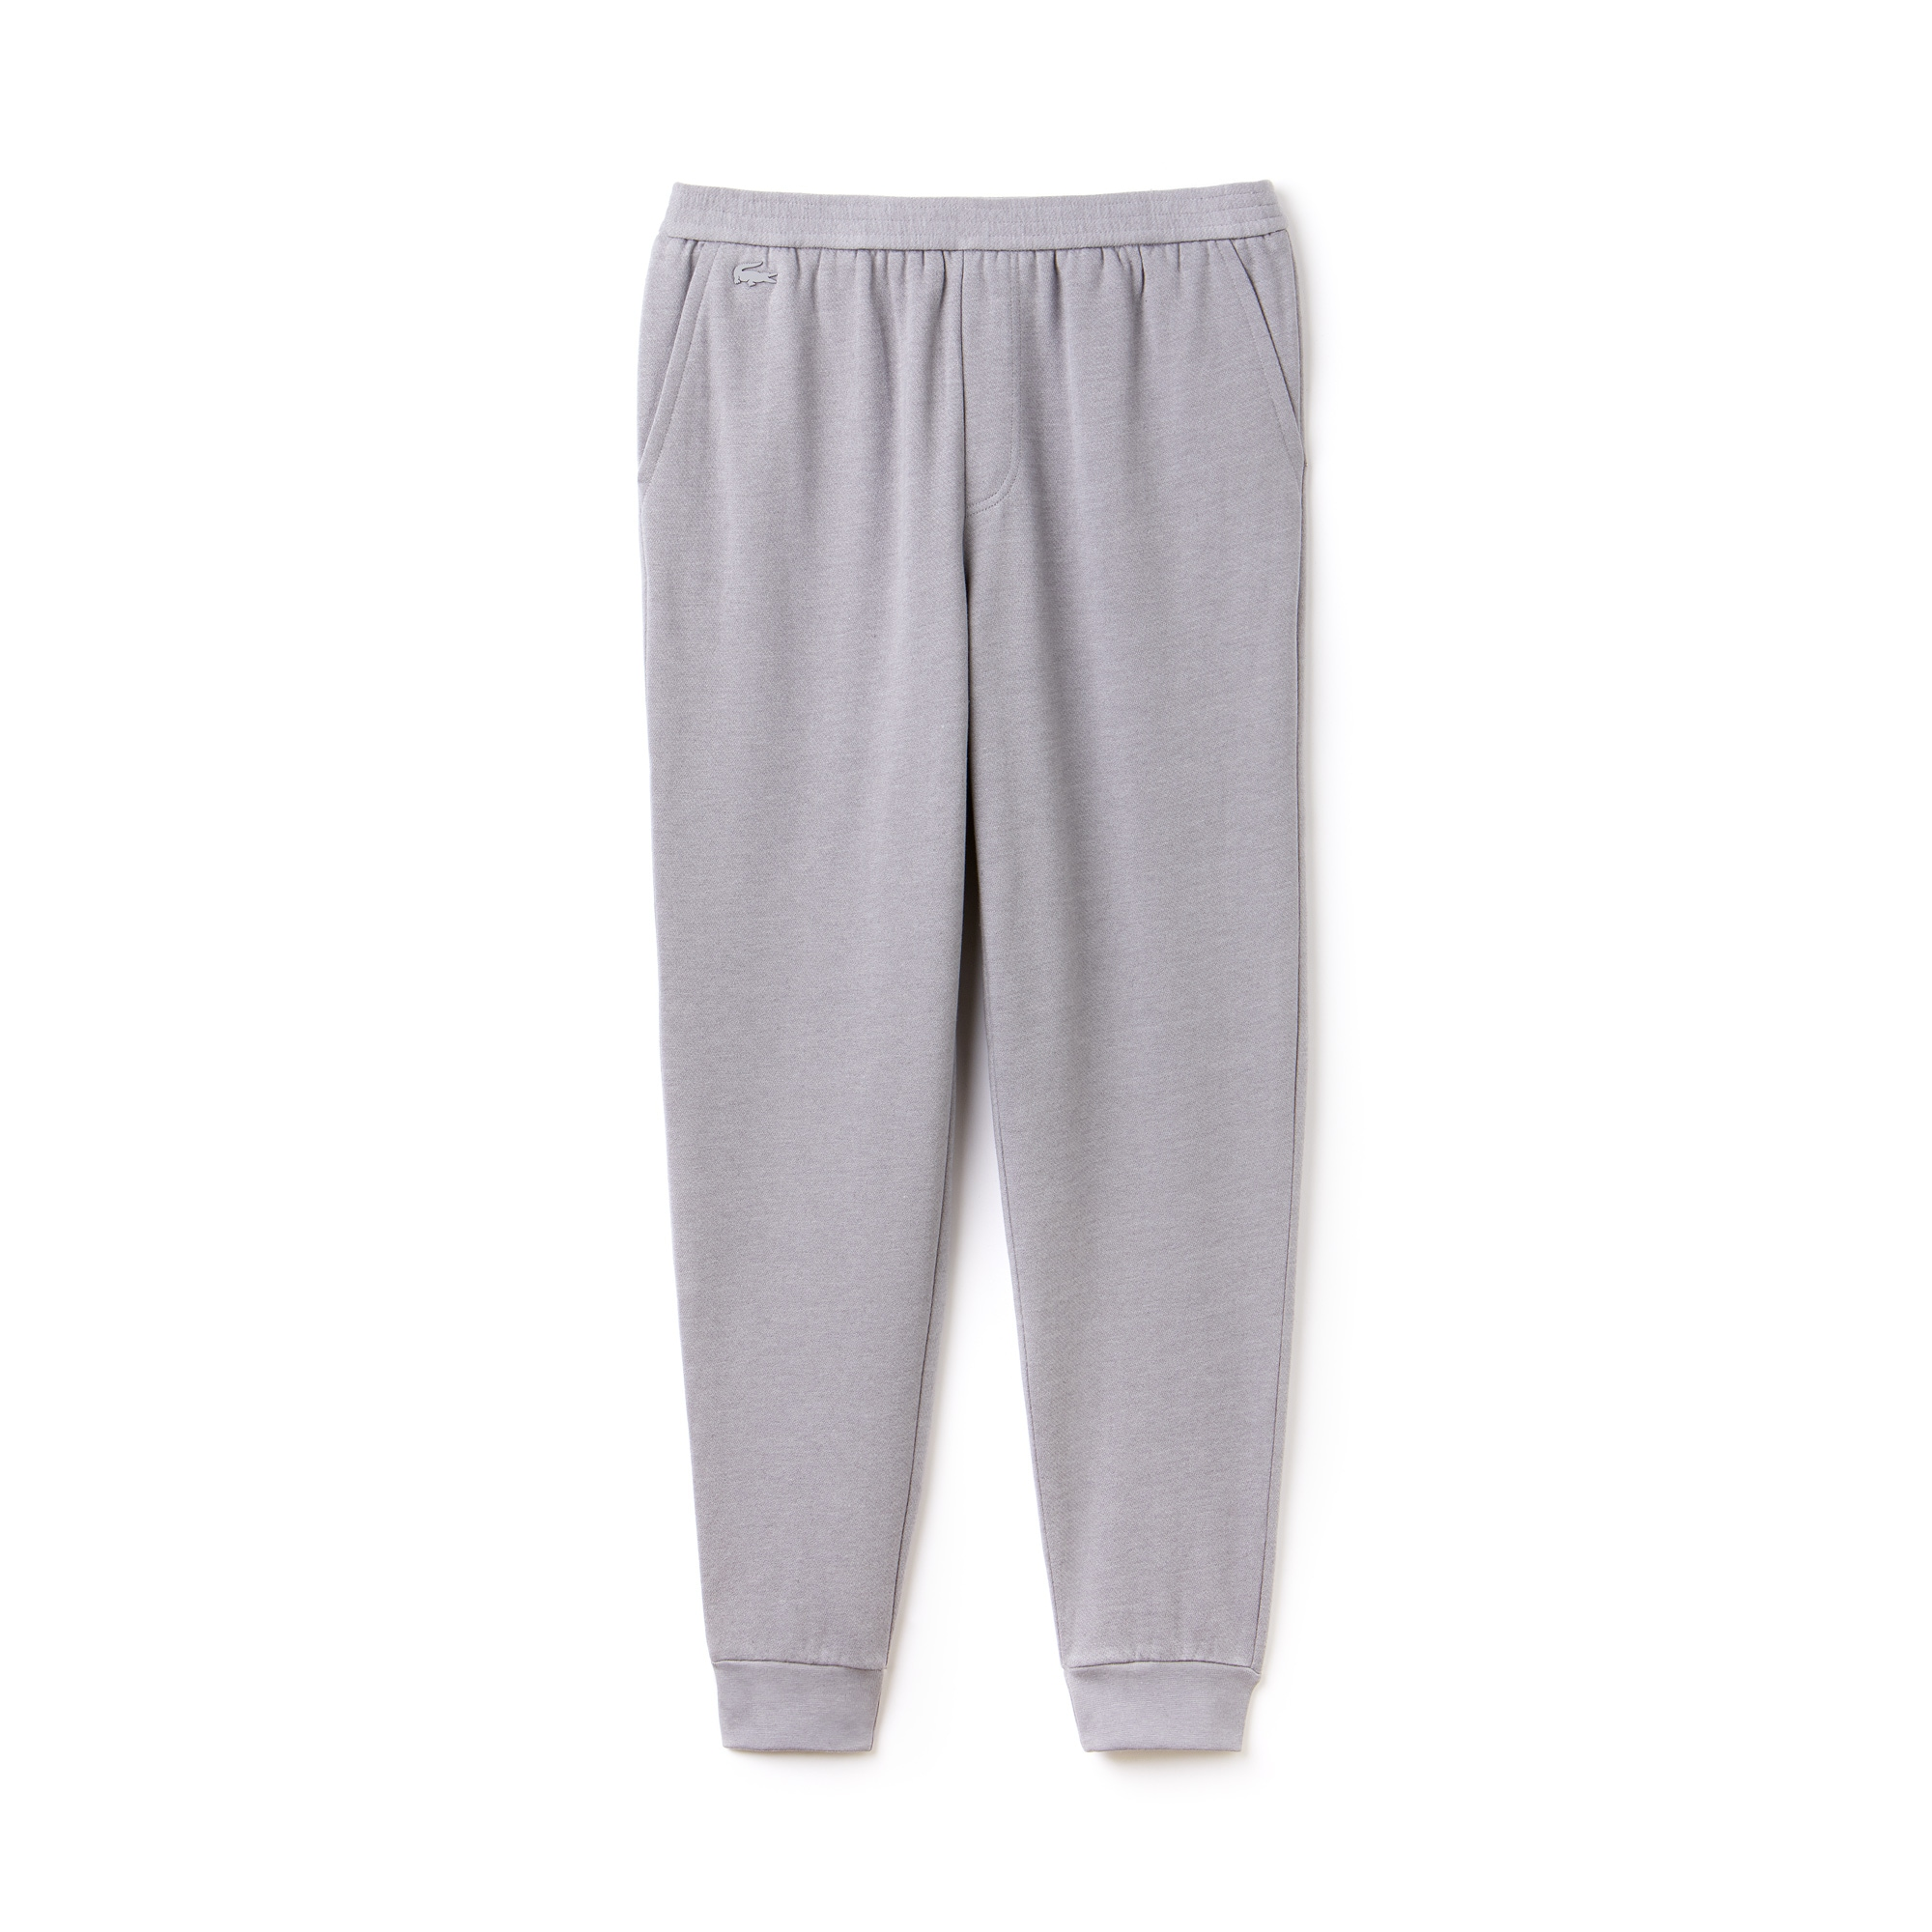 라코스테 스웻 팬츠 Lacoste Mens Motion Cotton And Wool Fleece Sweatpants,pluvier chine